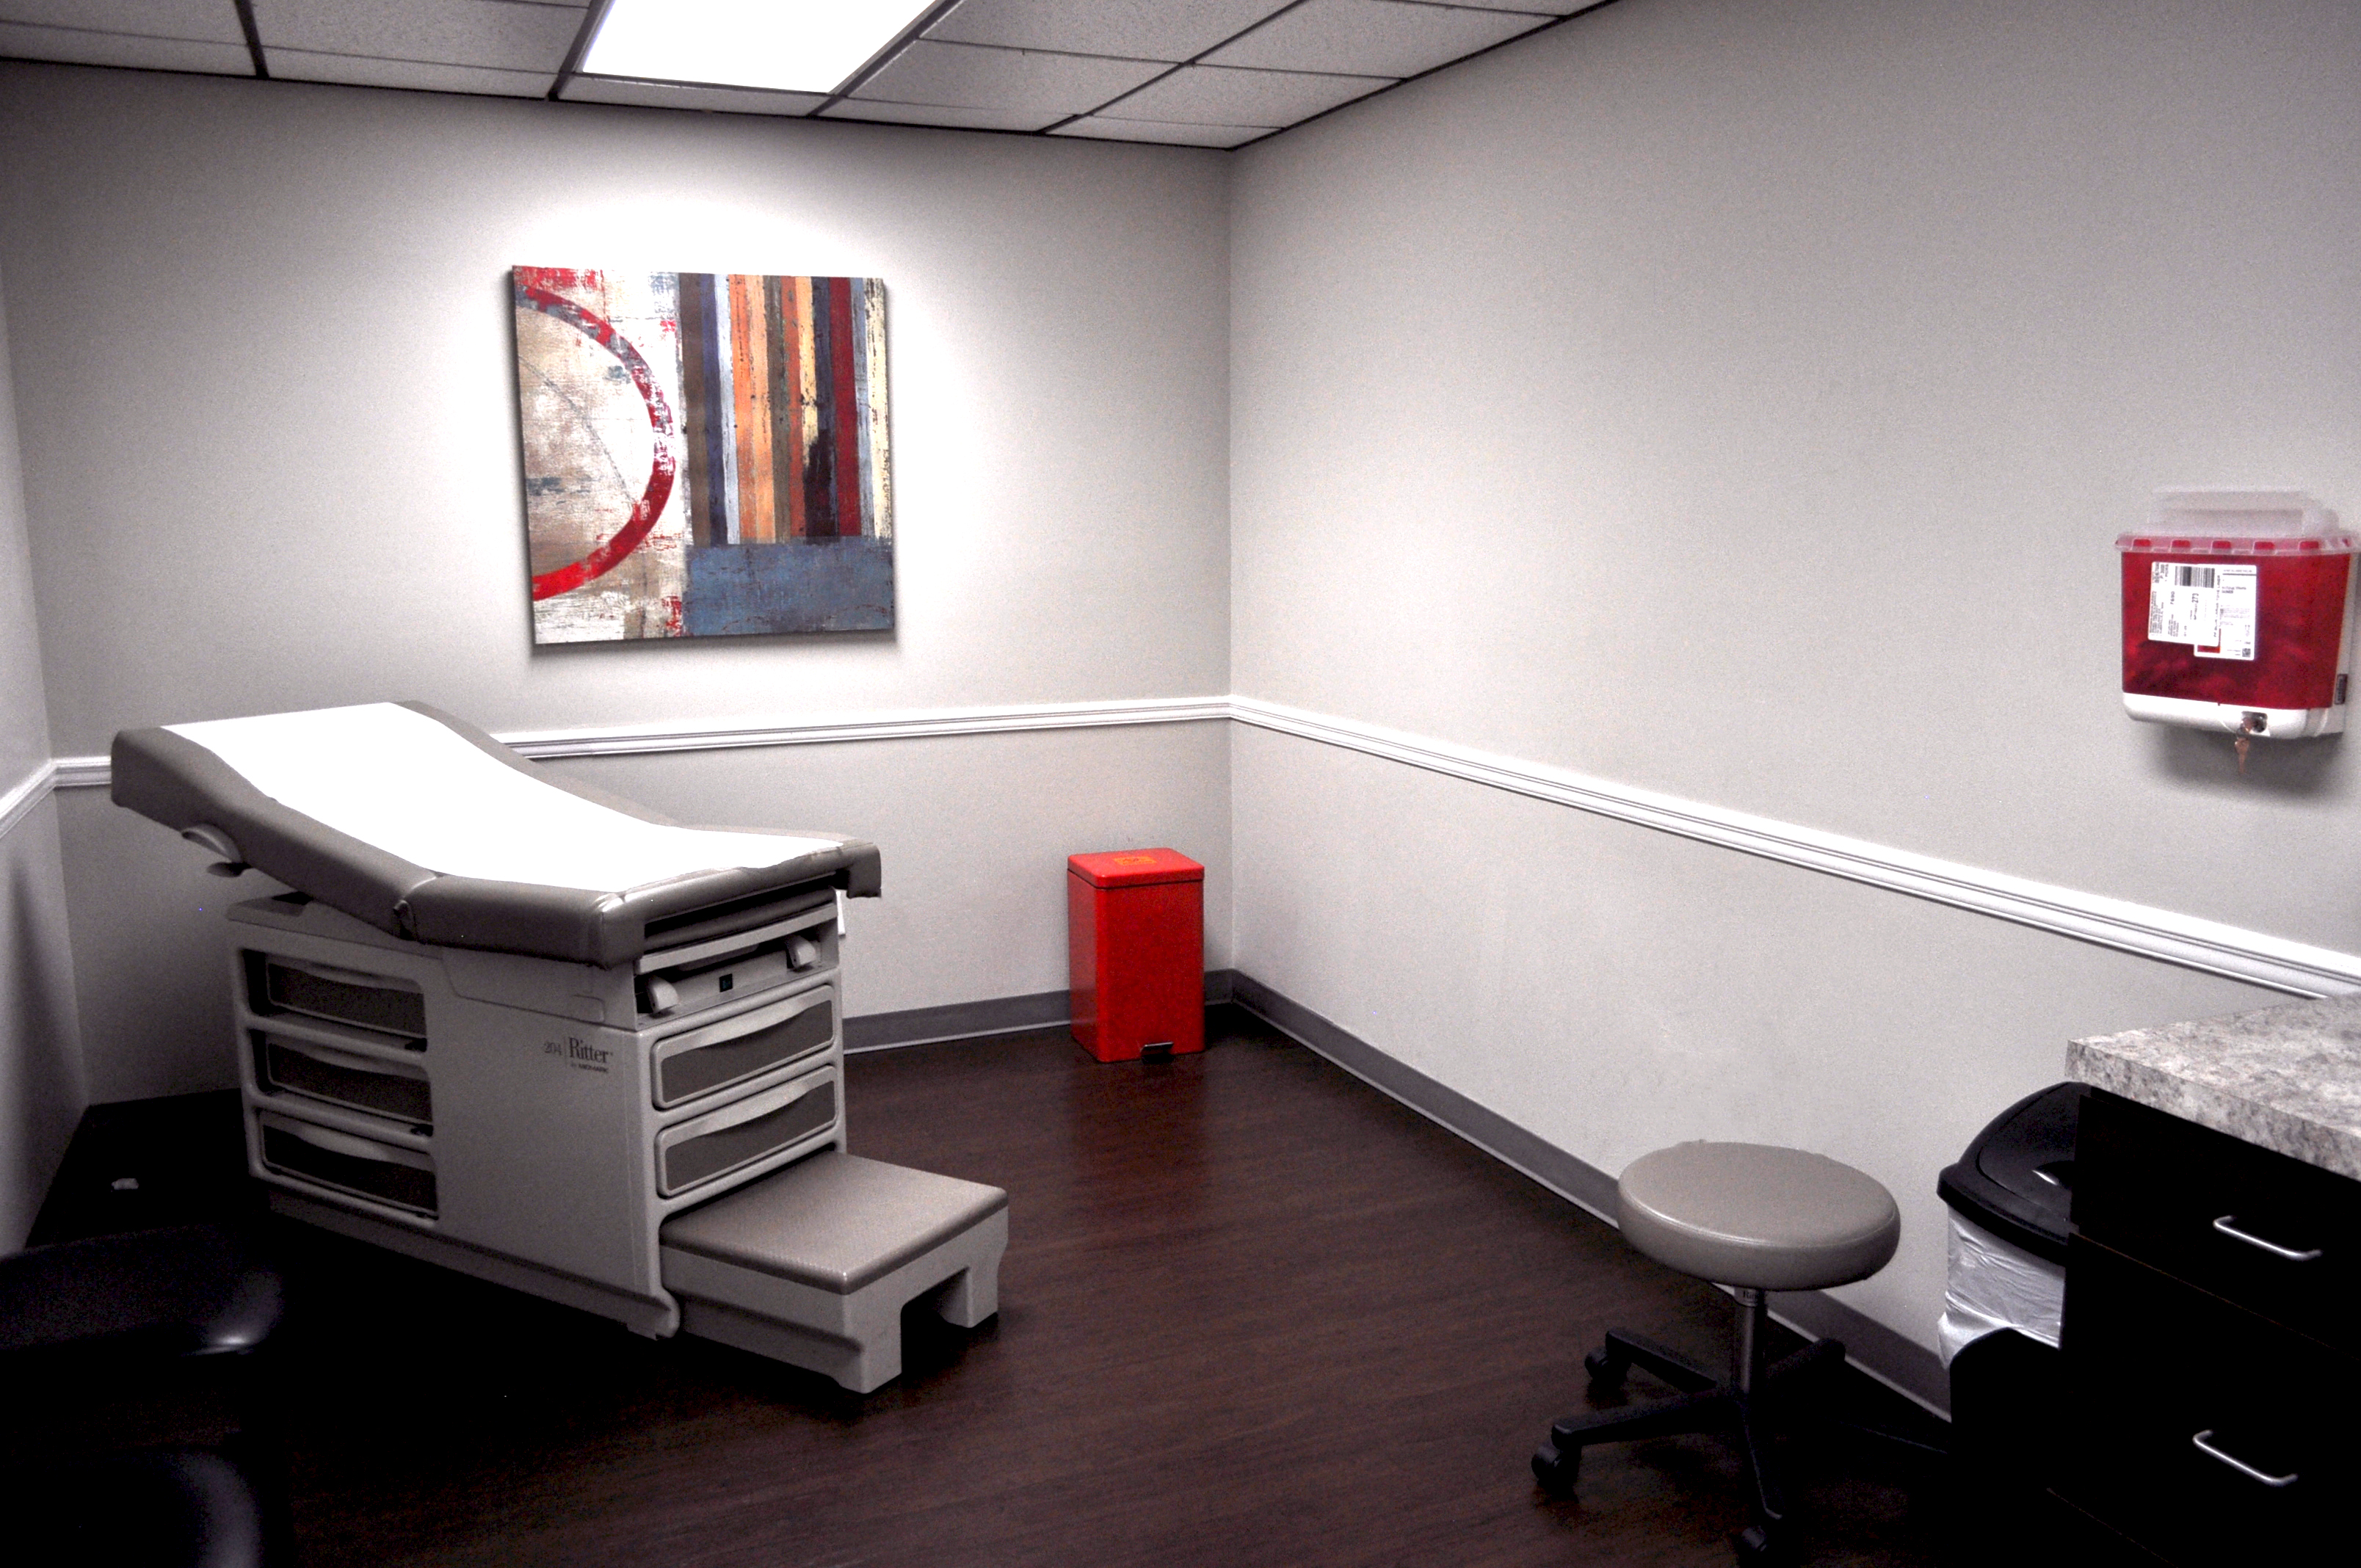 Symbol CareClinic Exam Room